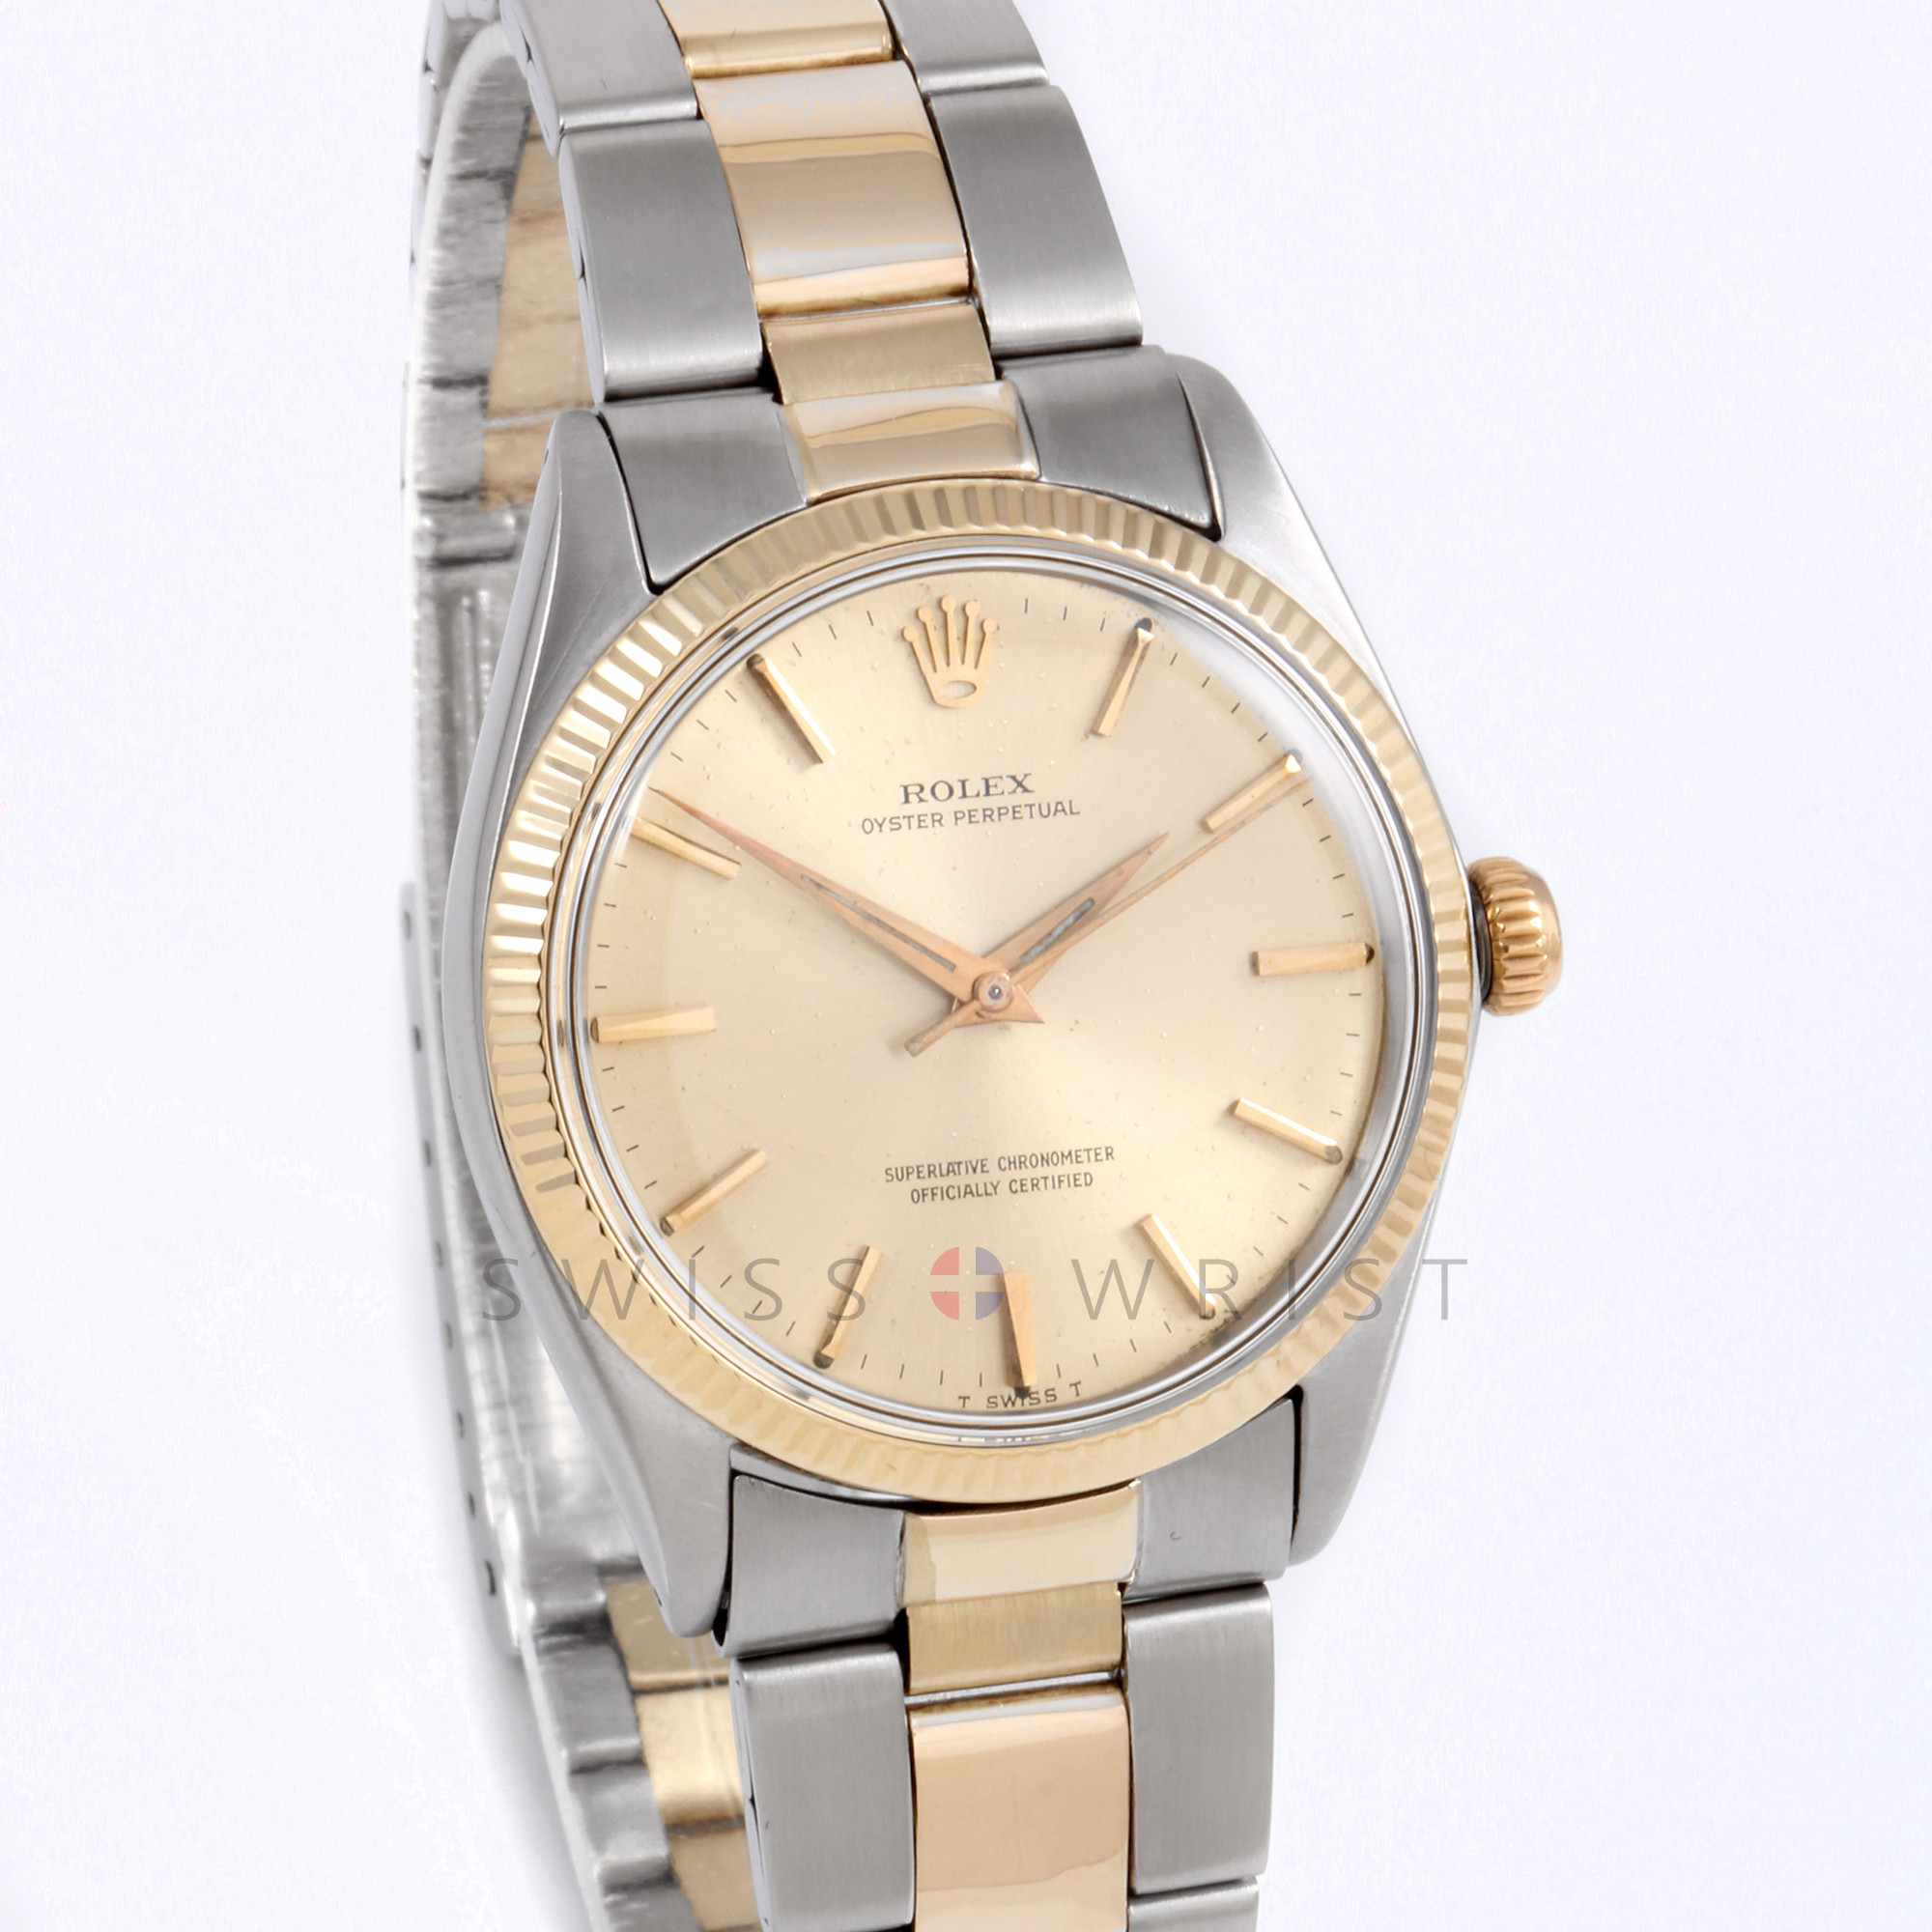 Rolex Oyster Perpetual 34mm No Date 1002 Yellow Gold & Stainless Steel w/ Champagne Stick Dial & Fluted Bezel on Oyster Bracelet - Men's Pre-Owned